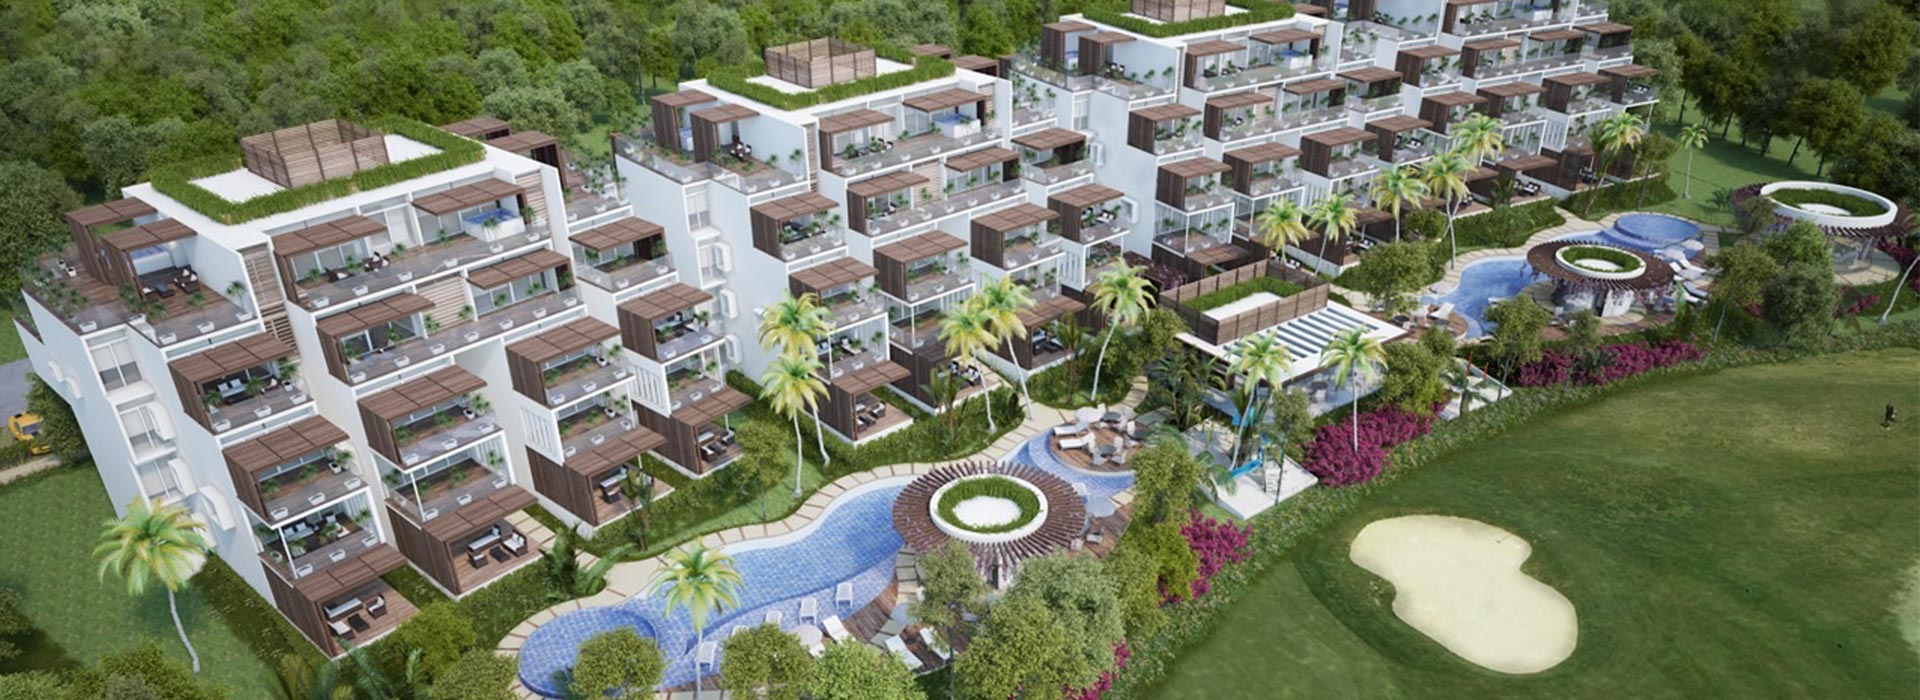 Condominium Bahia Principe Terraces -   Pre Sale